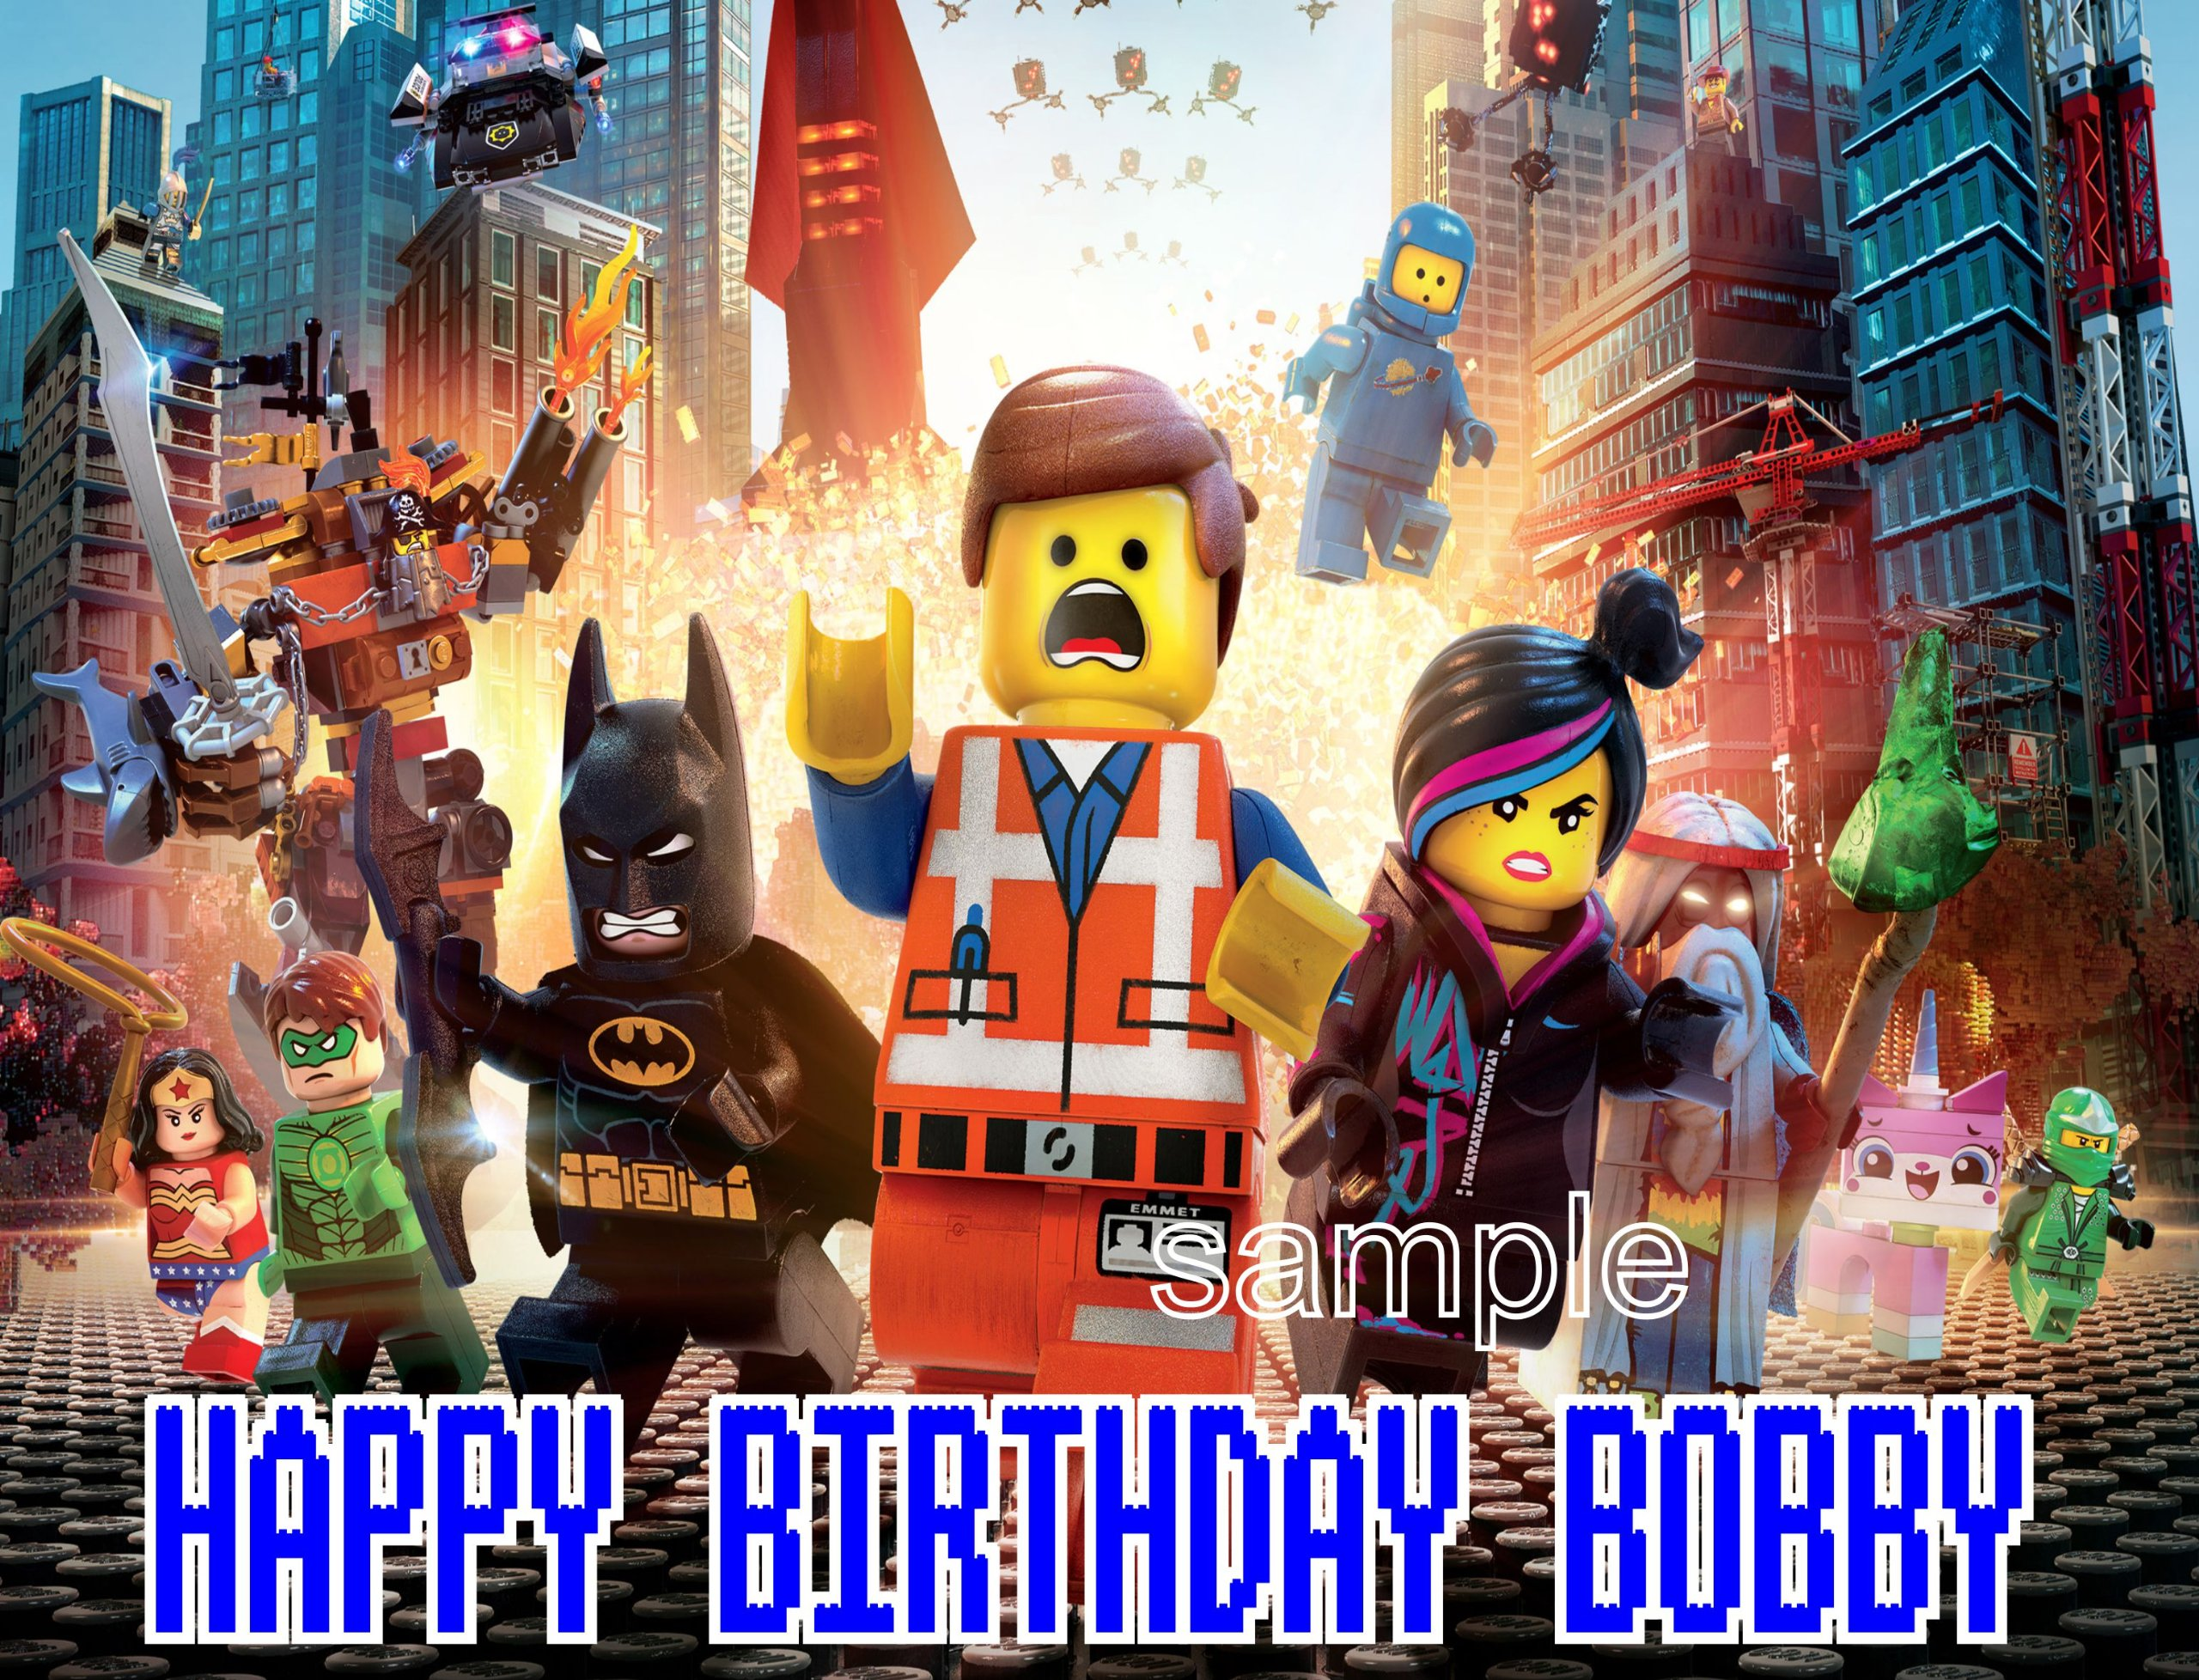 The New Lego Movie Edible Cake Topper Frosting Sheet. 10 x 16 size cake topper